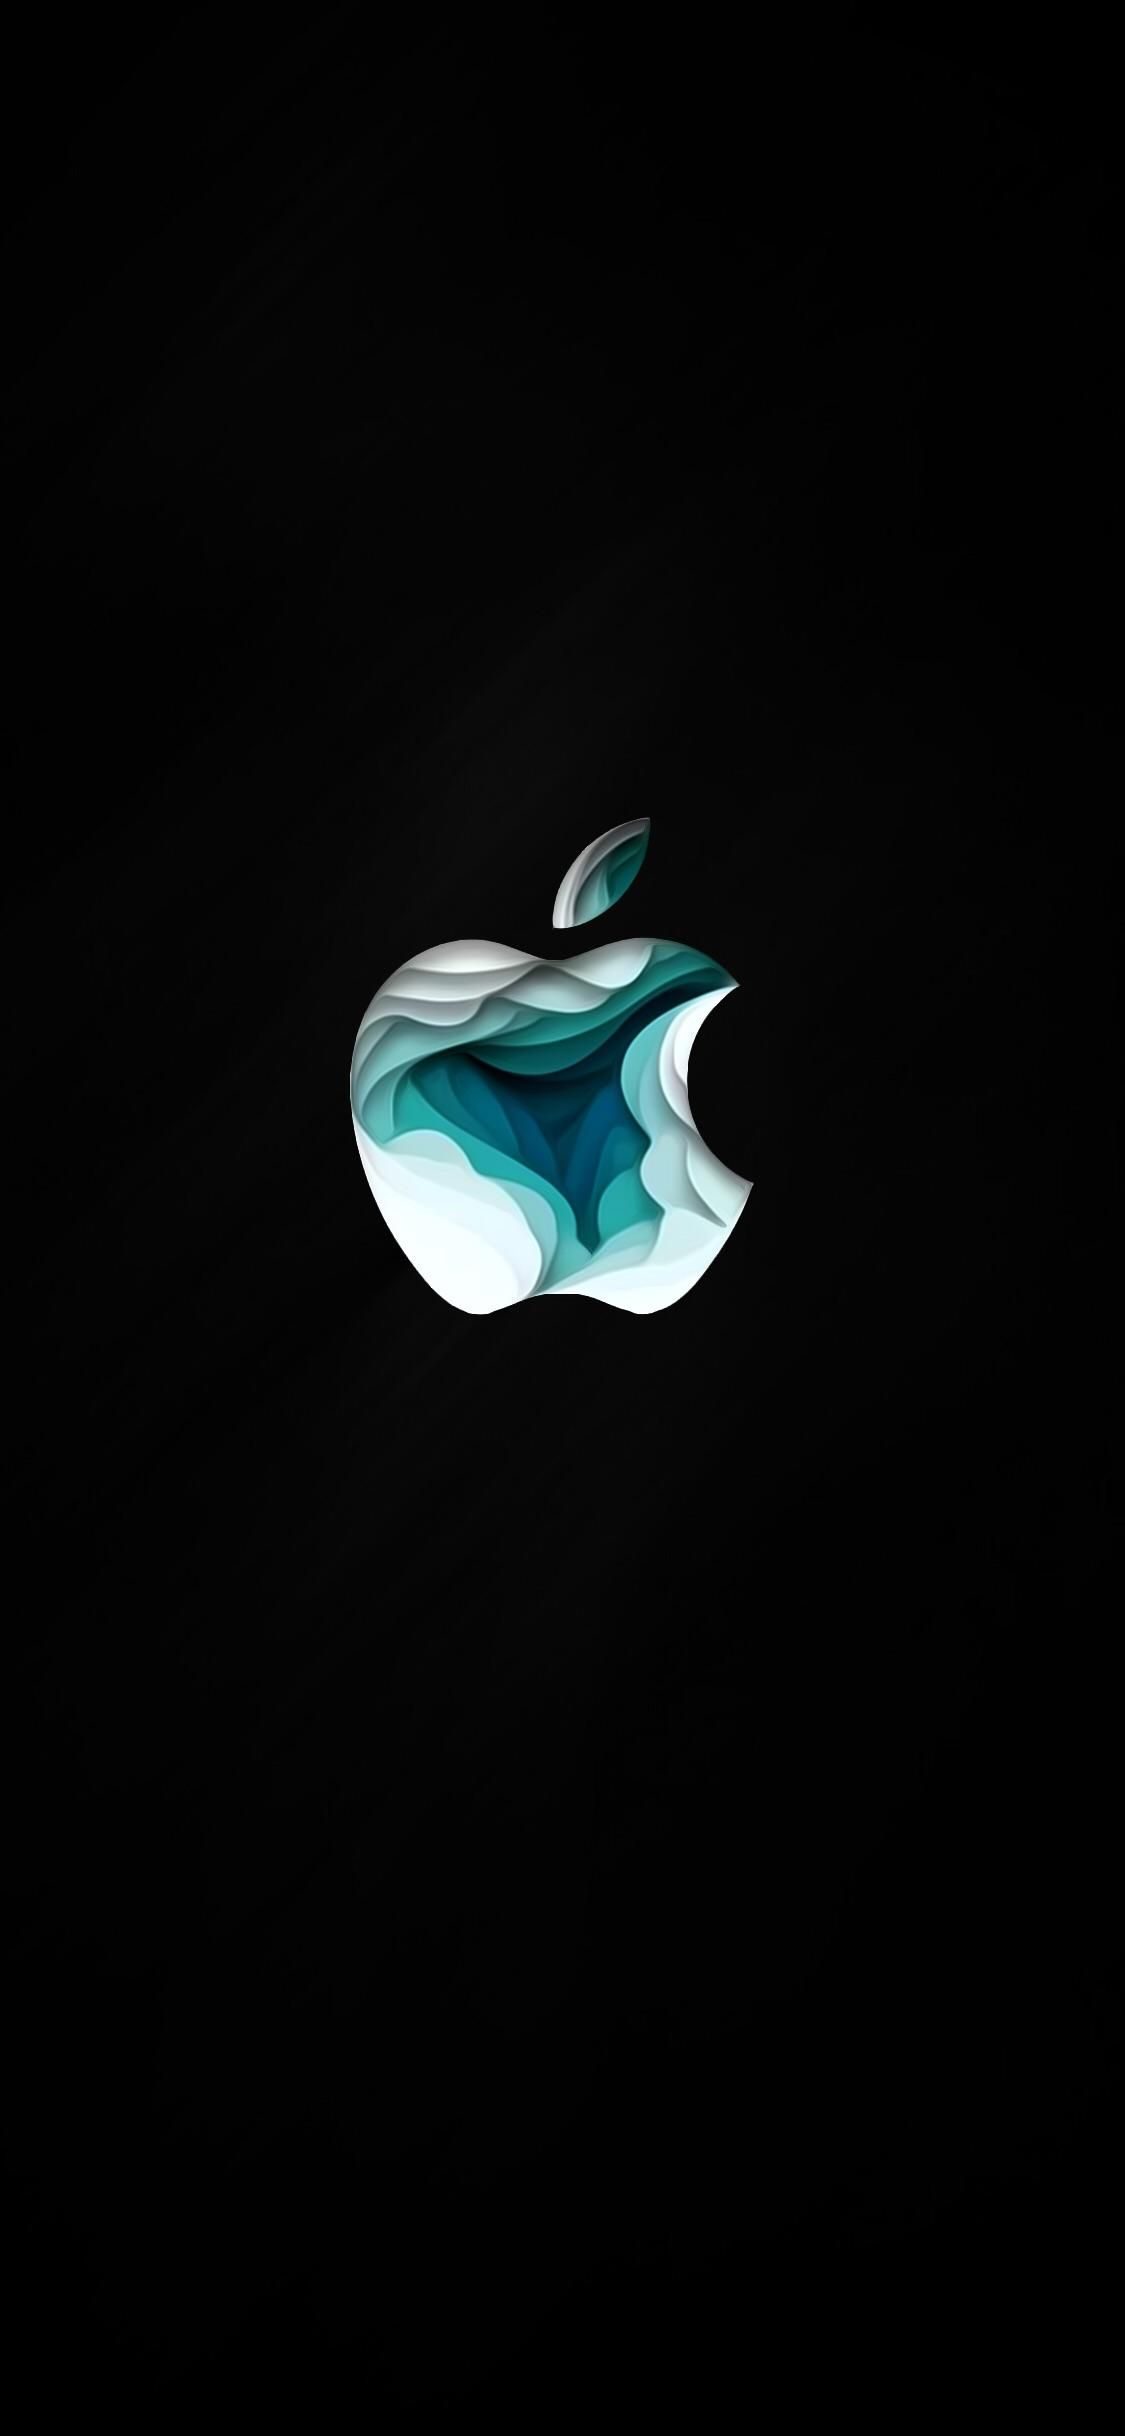 Apple Special Event Logo True Black Apple Logo Wallpaper